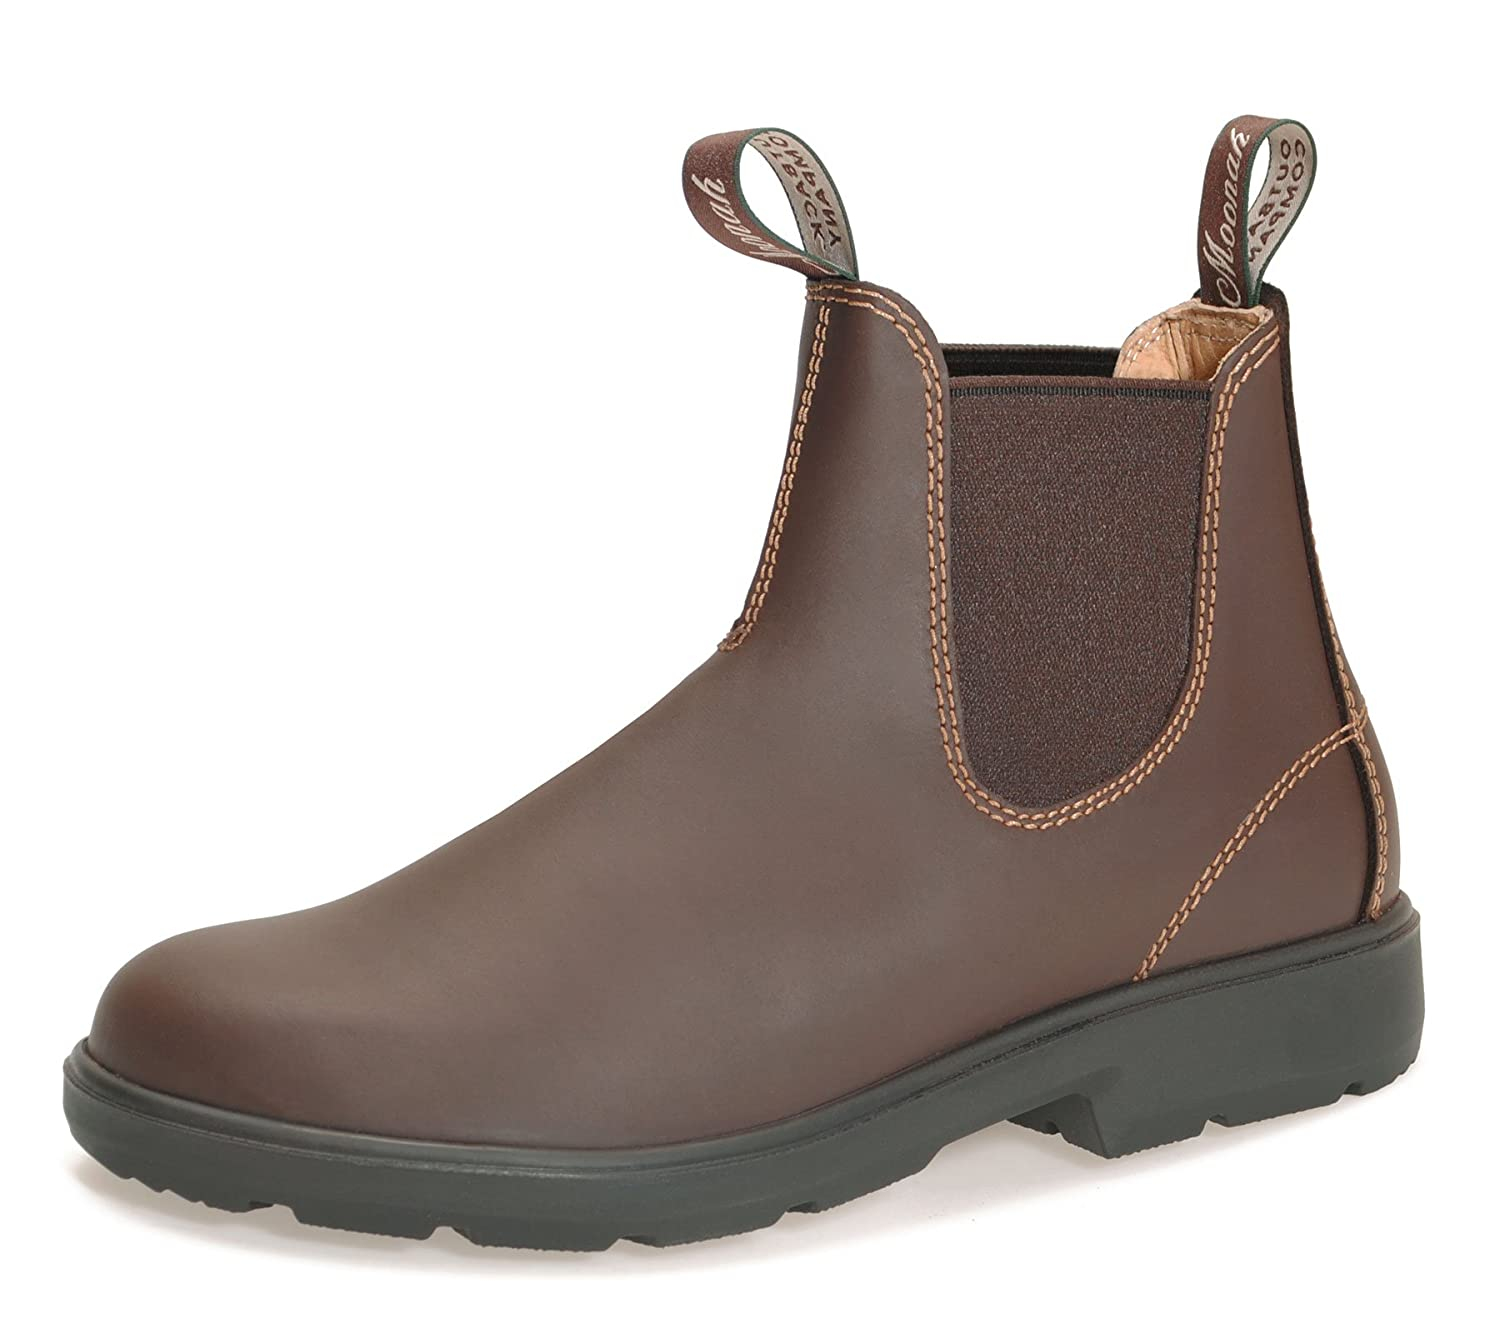 MOONAH Ladies' Town & Country Chelsea Stiefel Light   Chestnut